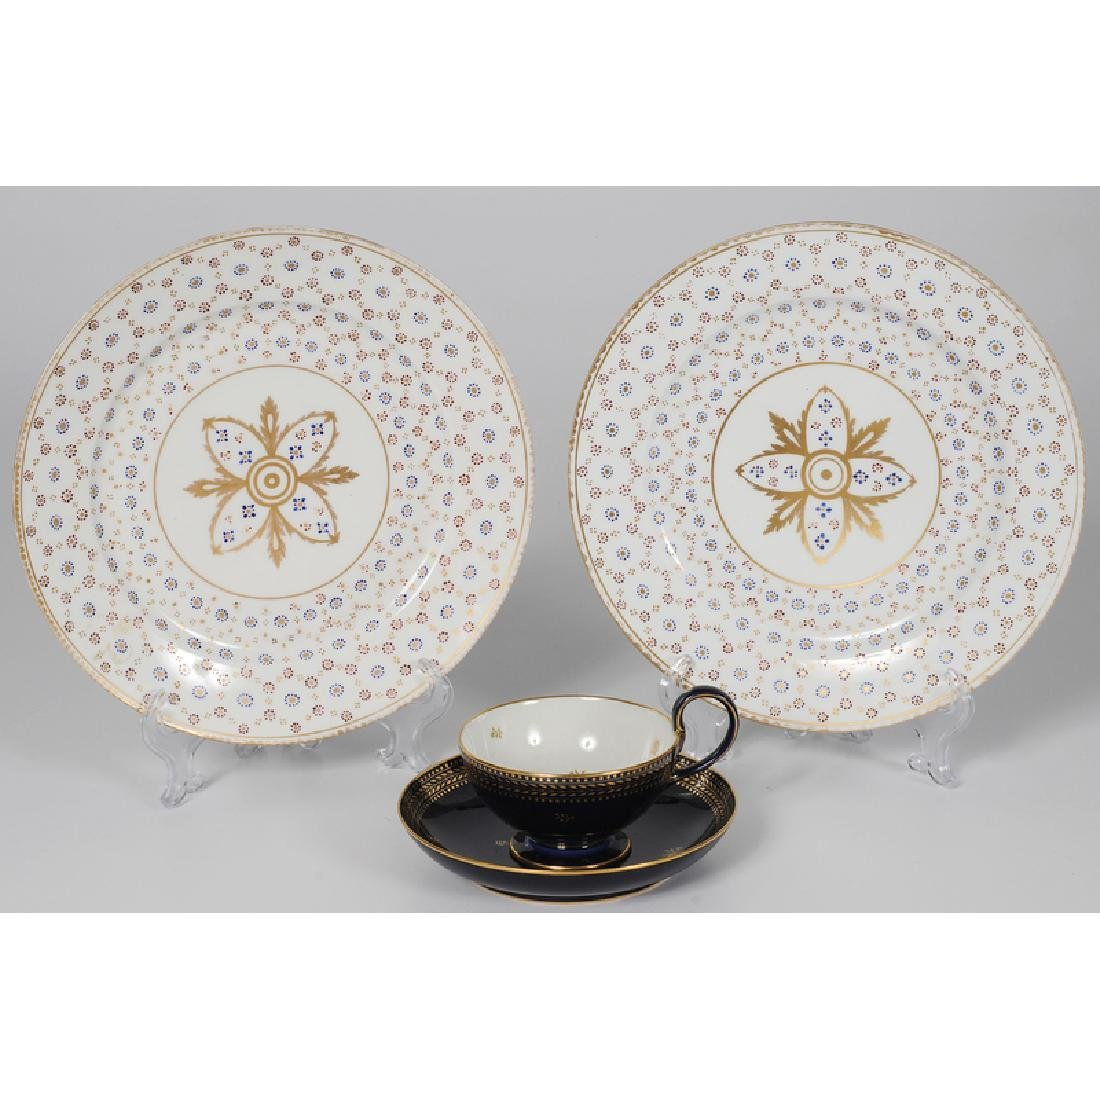 Sèvres Cup and Saucer, and Plates